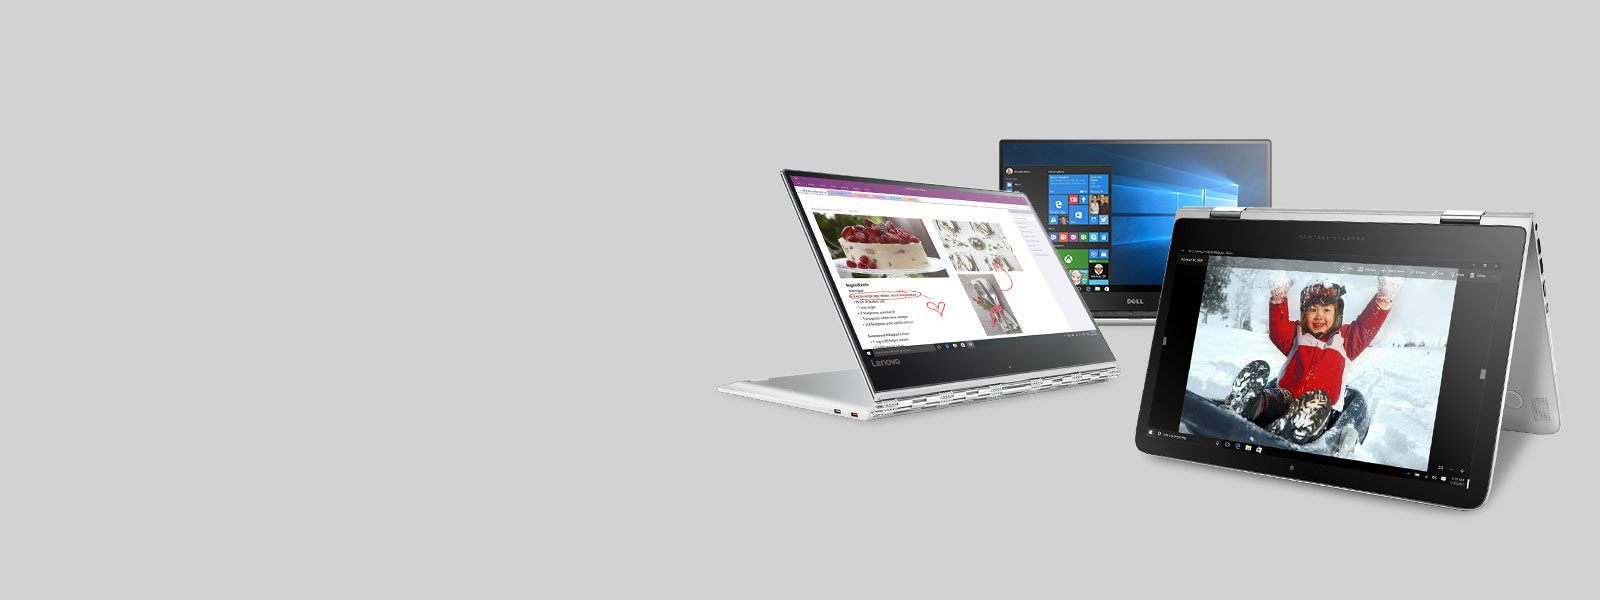 A Lenovo Yoga 910 laptop, an HP Spectre x360 laptop and a Dell XPS 13 laptop